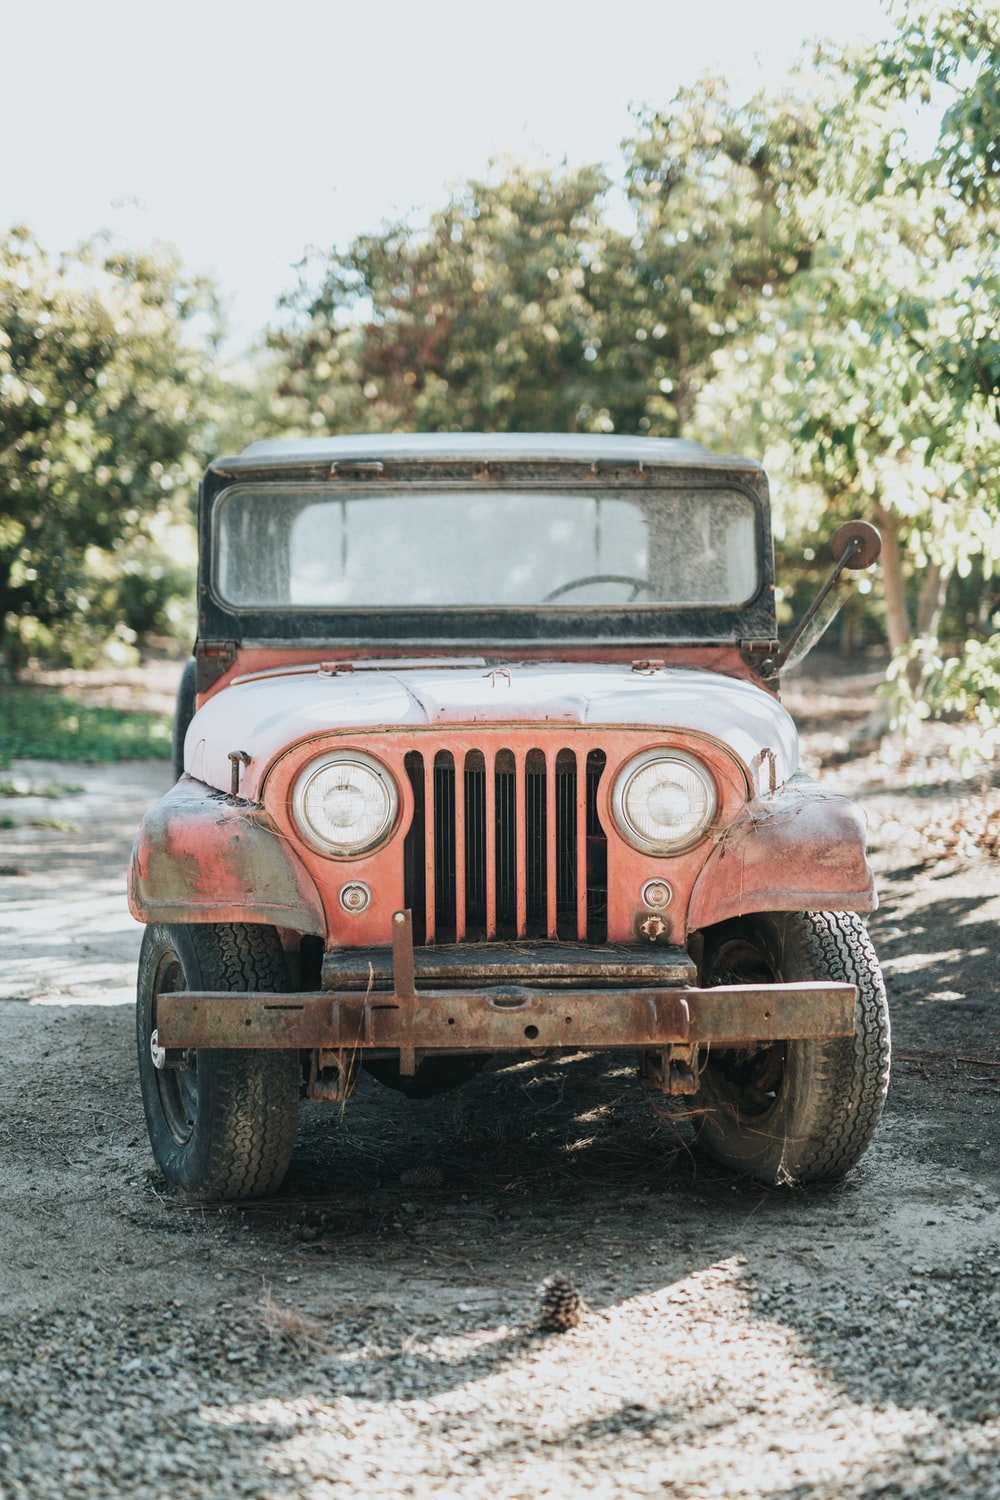 350 Jeep Pictures Hd Download Free Images Stock Photos On Unsplash And download holi editing background for 2021. 350 jeep pictures hd download free